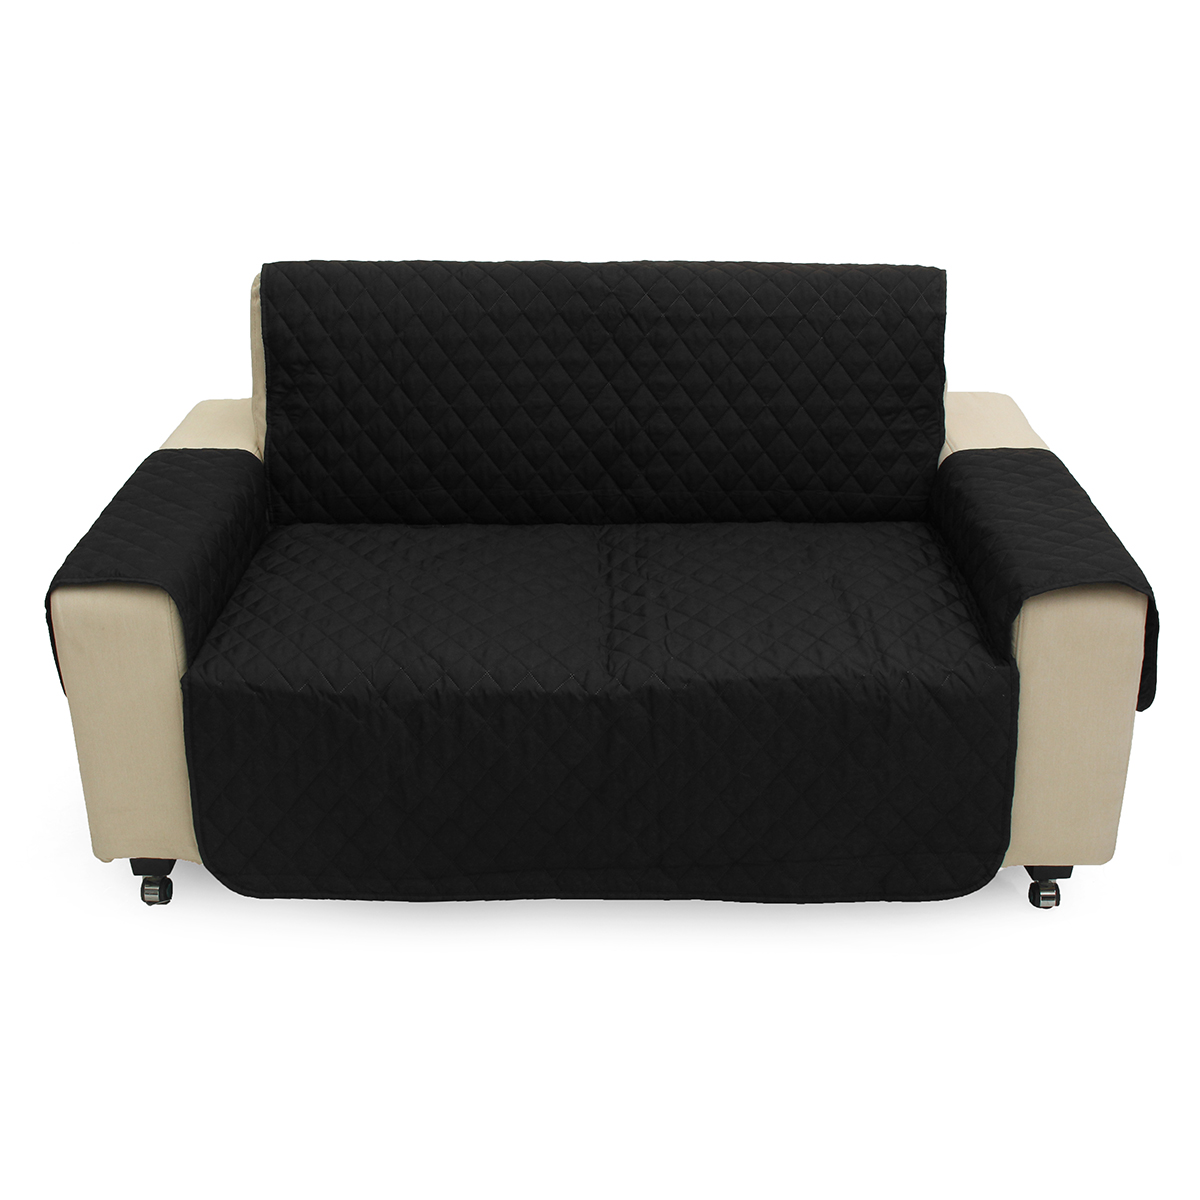 2 Seater Black Pet Sofa Couch Protective Cover Pad Remo